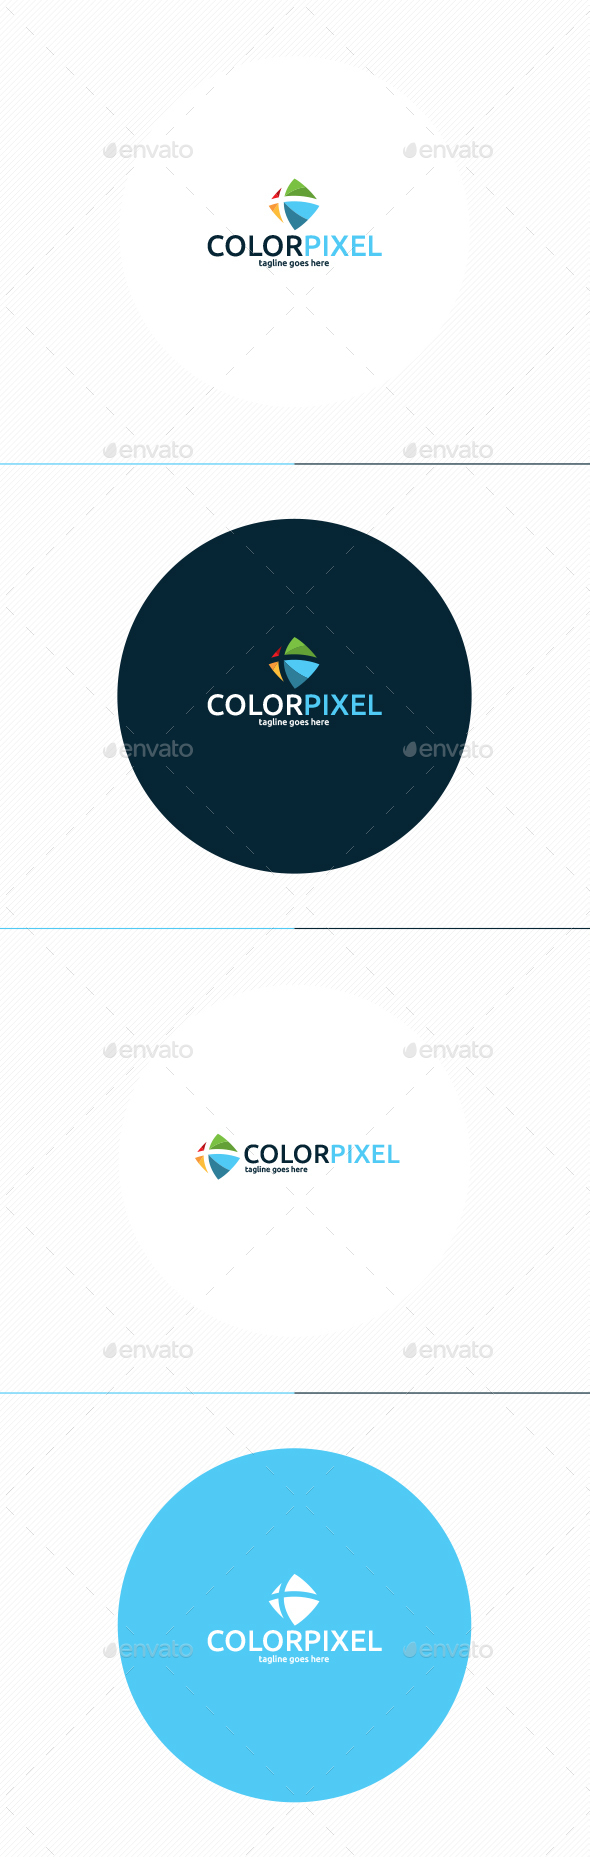 Color Pixel Logo - Vector Abstract